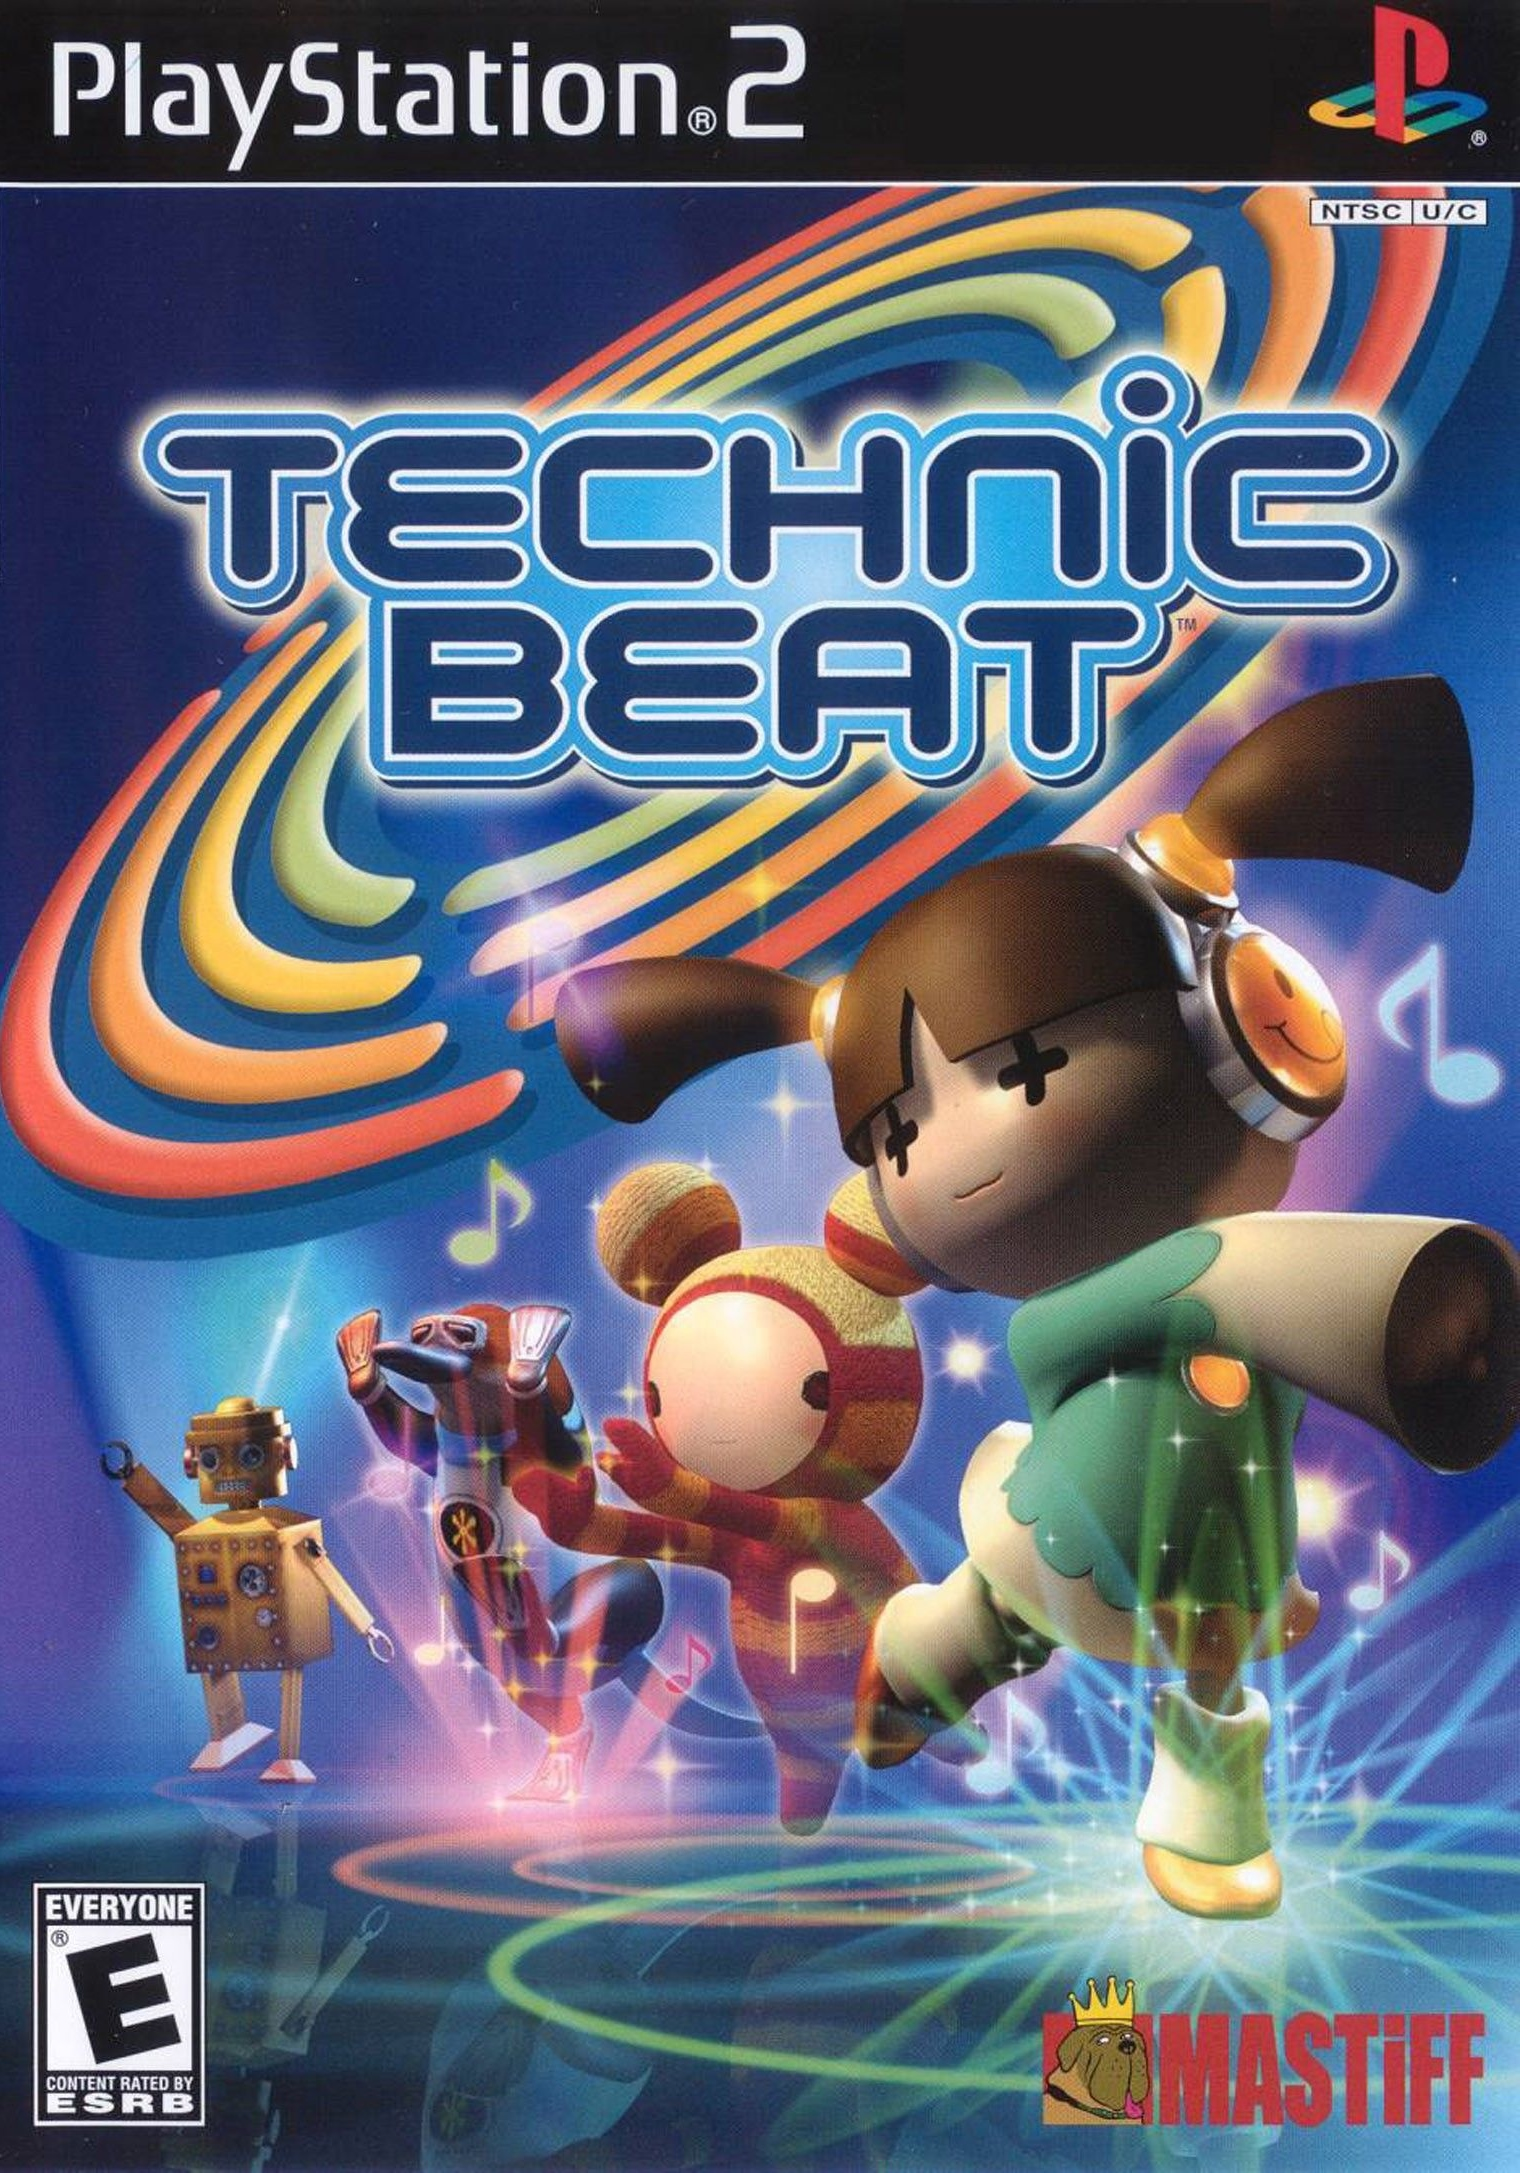 Technicbeat Cover